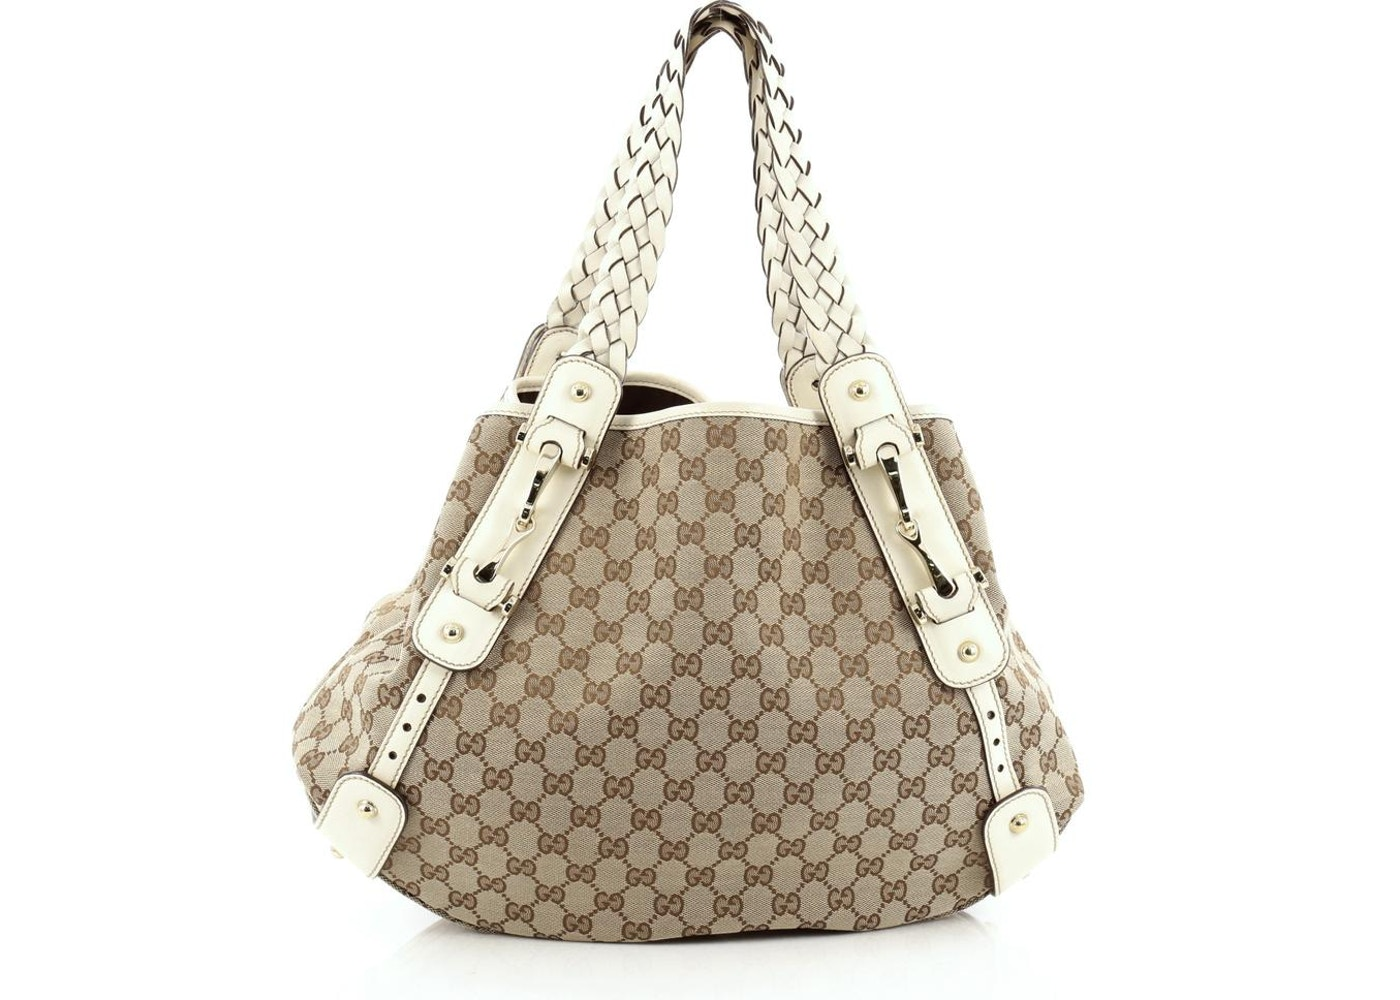 fee3de9a5 Gucci Pelham Shoulder GG Monogram Medium Brown/White. GG Monogram Medium  Brown/White